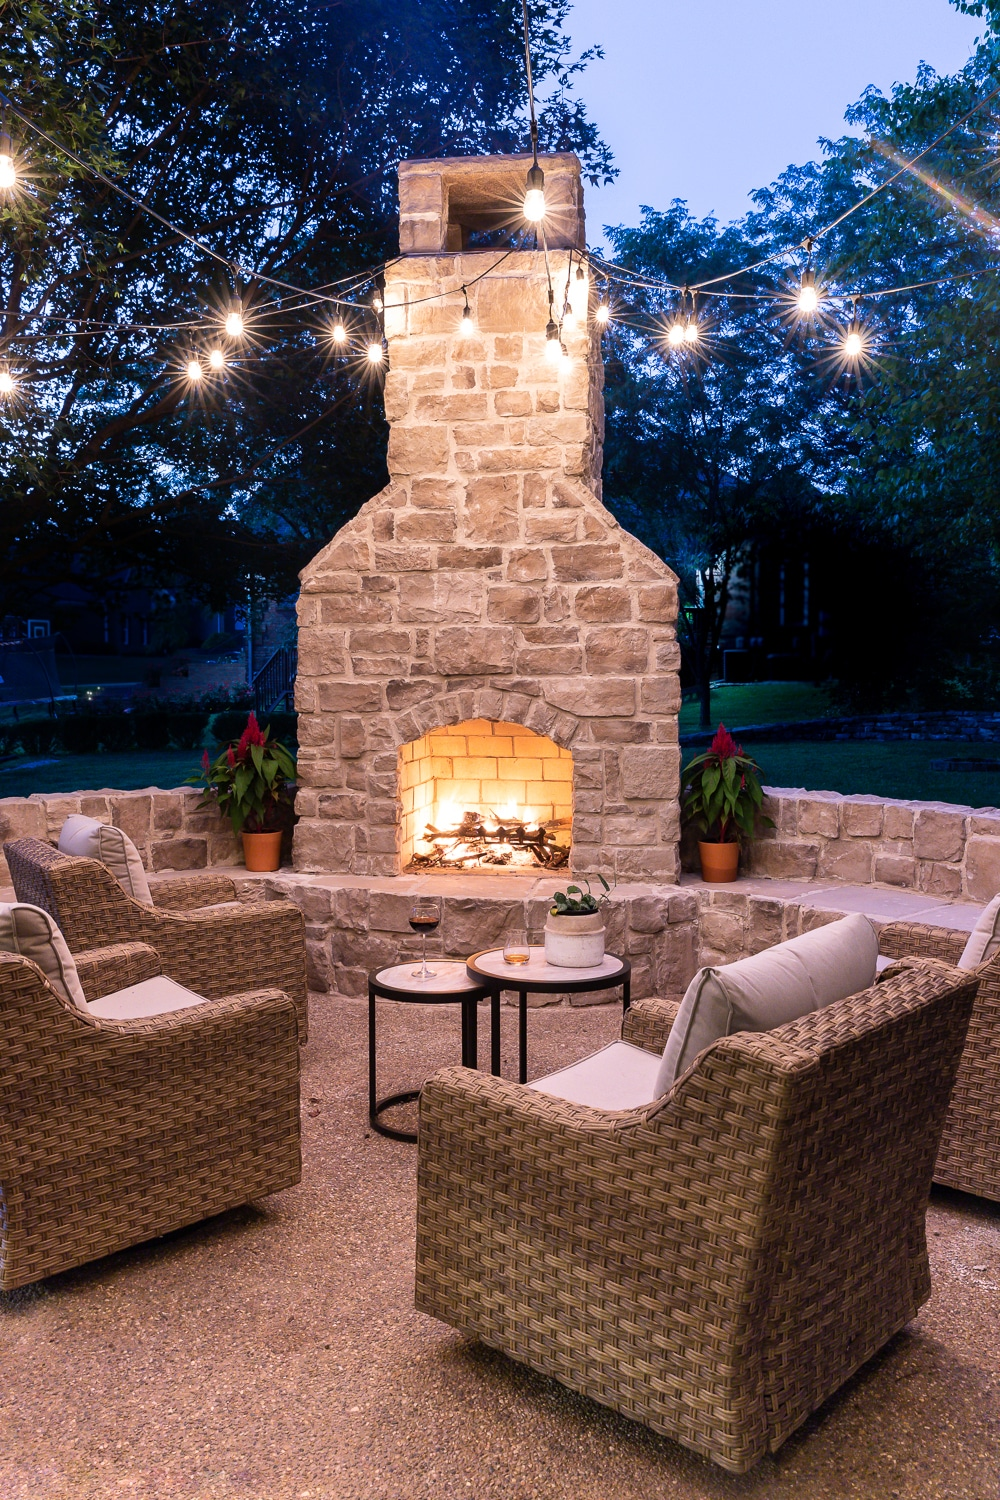 Gorgeous outdoor fireplace on a curved patio - with bench seats